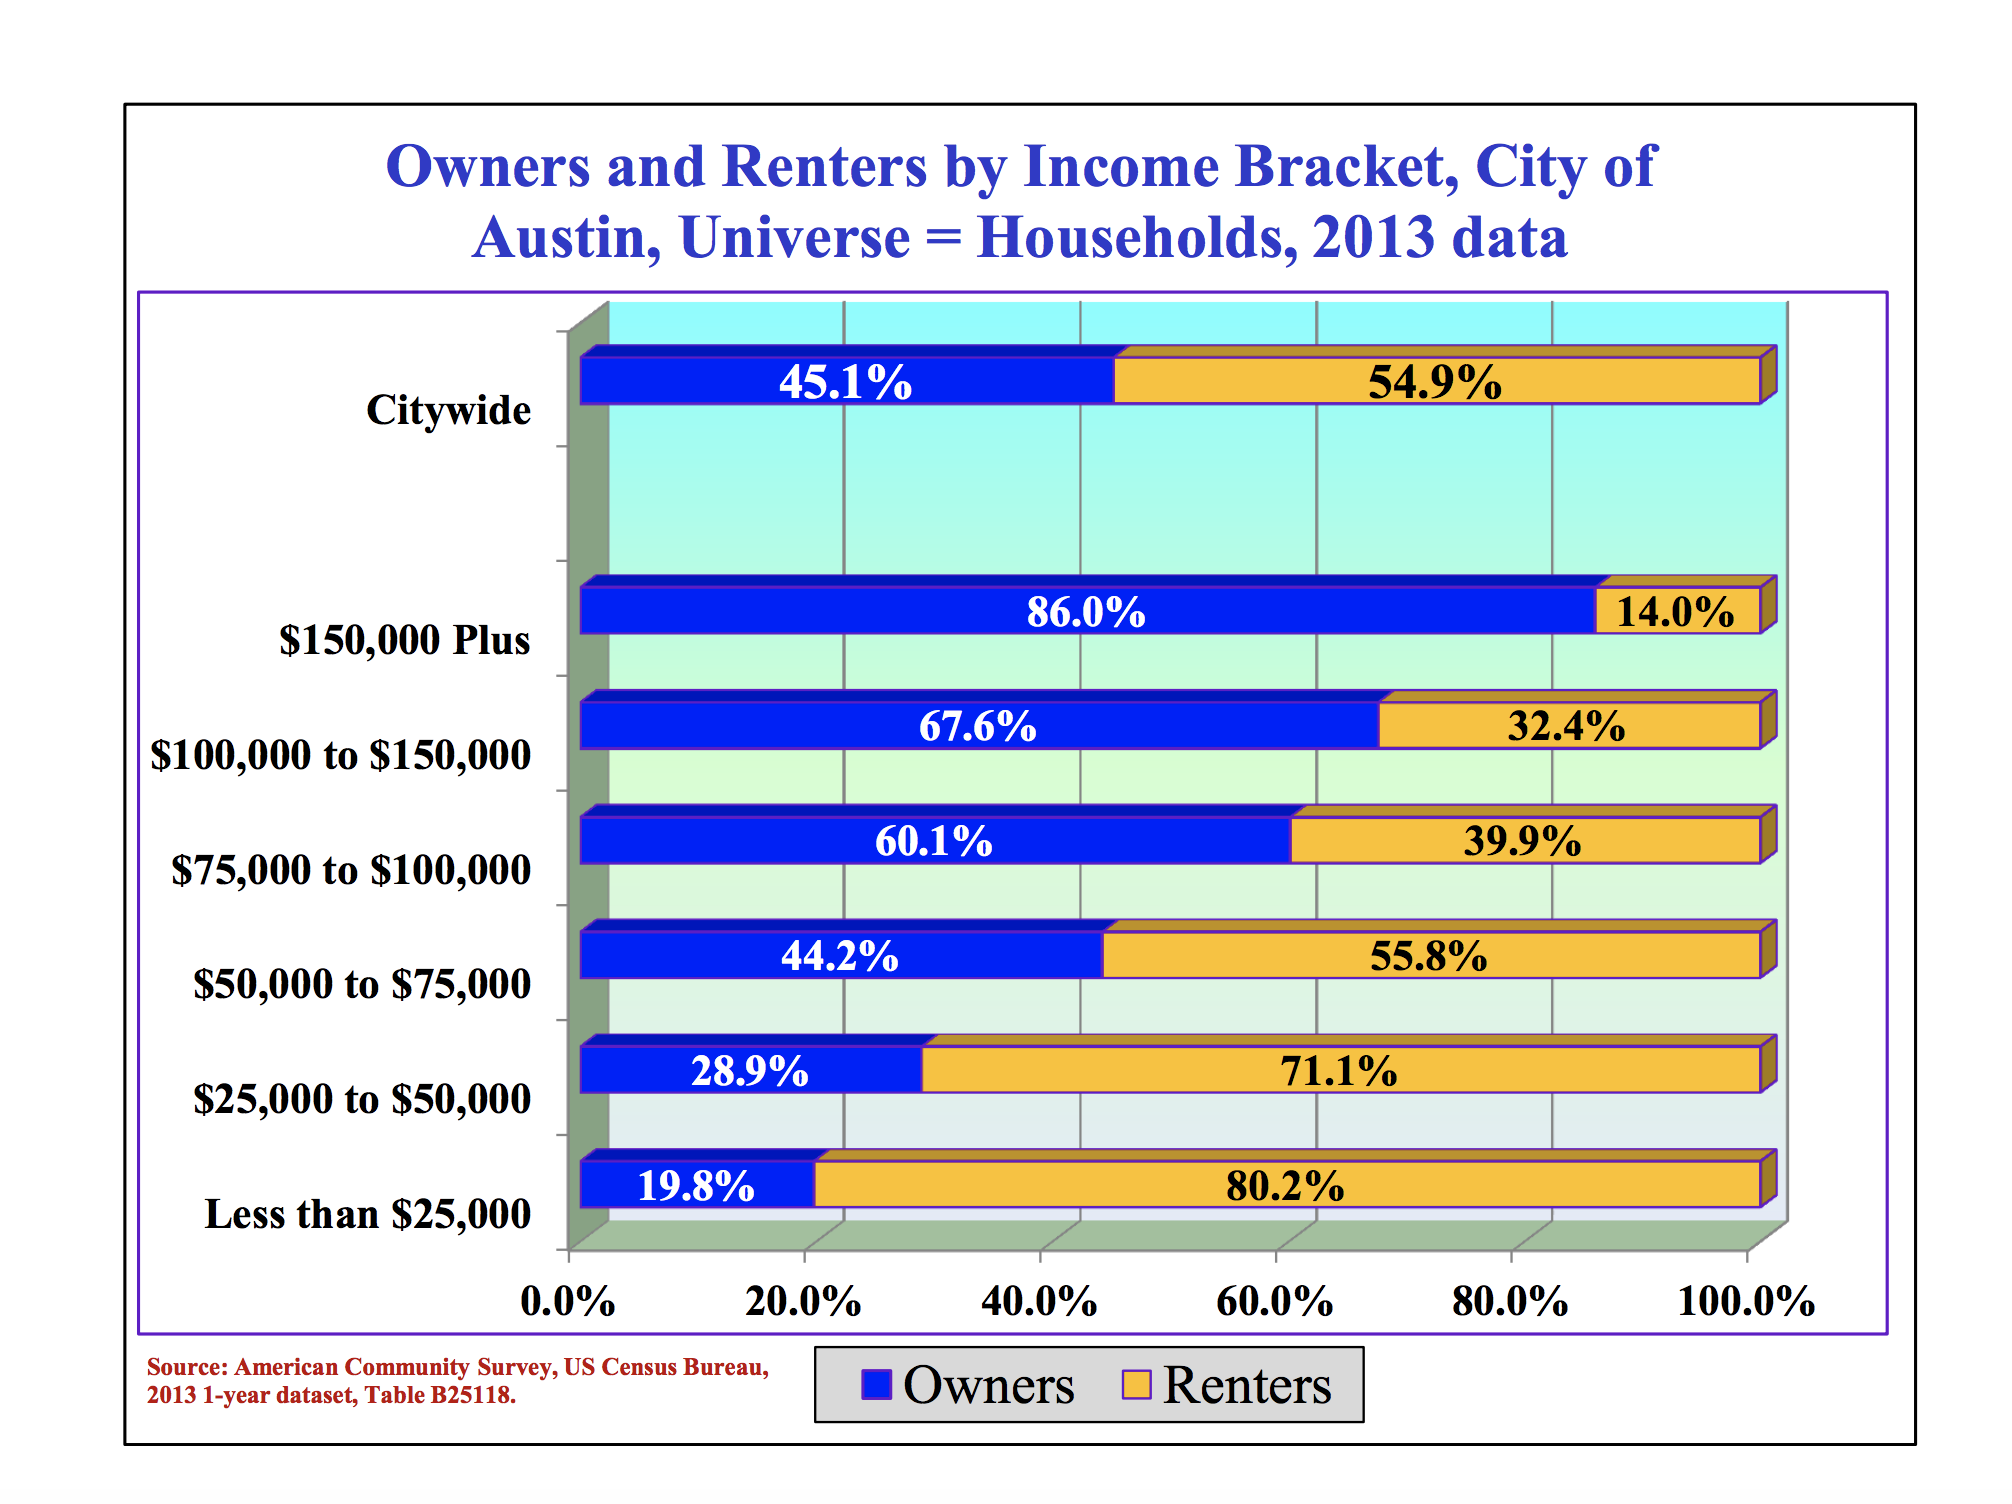 owners-and-renters-by-income